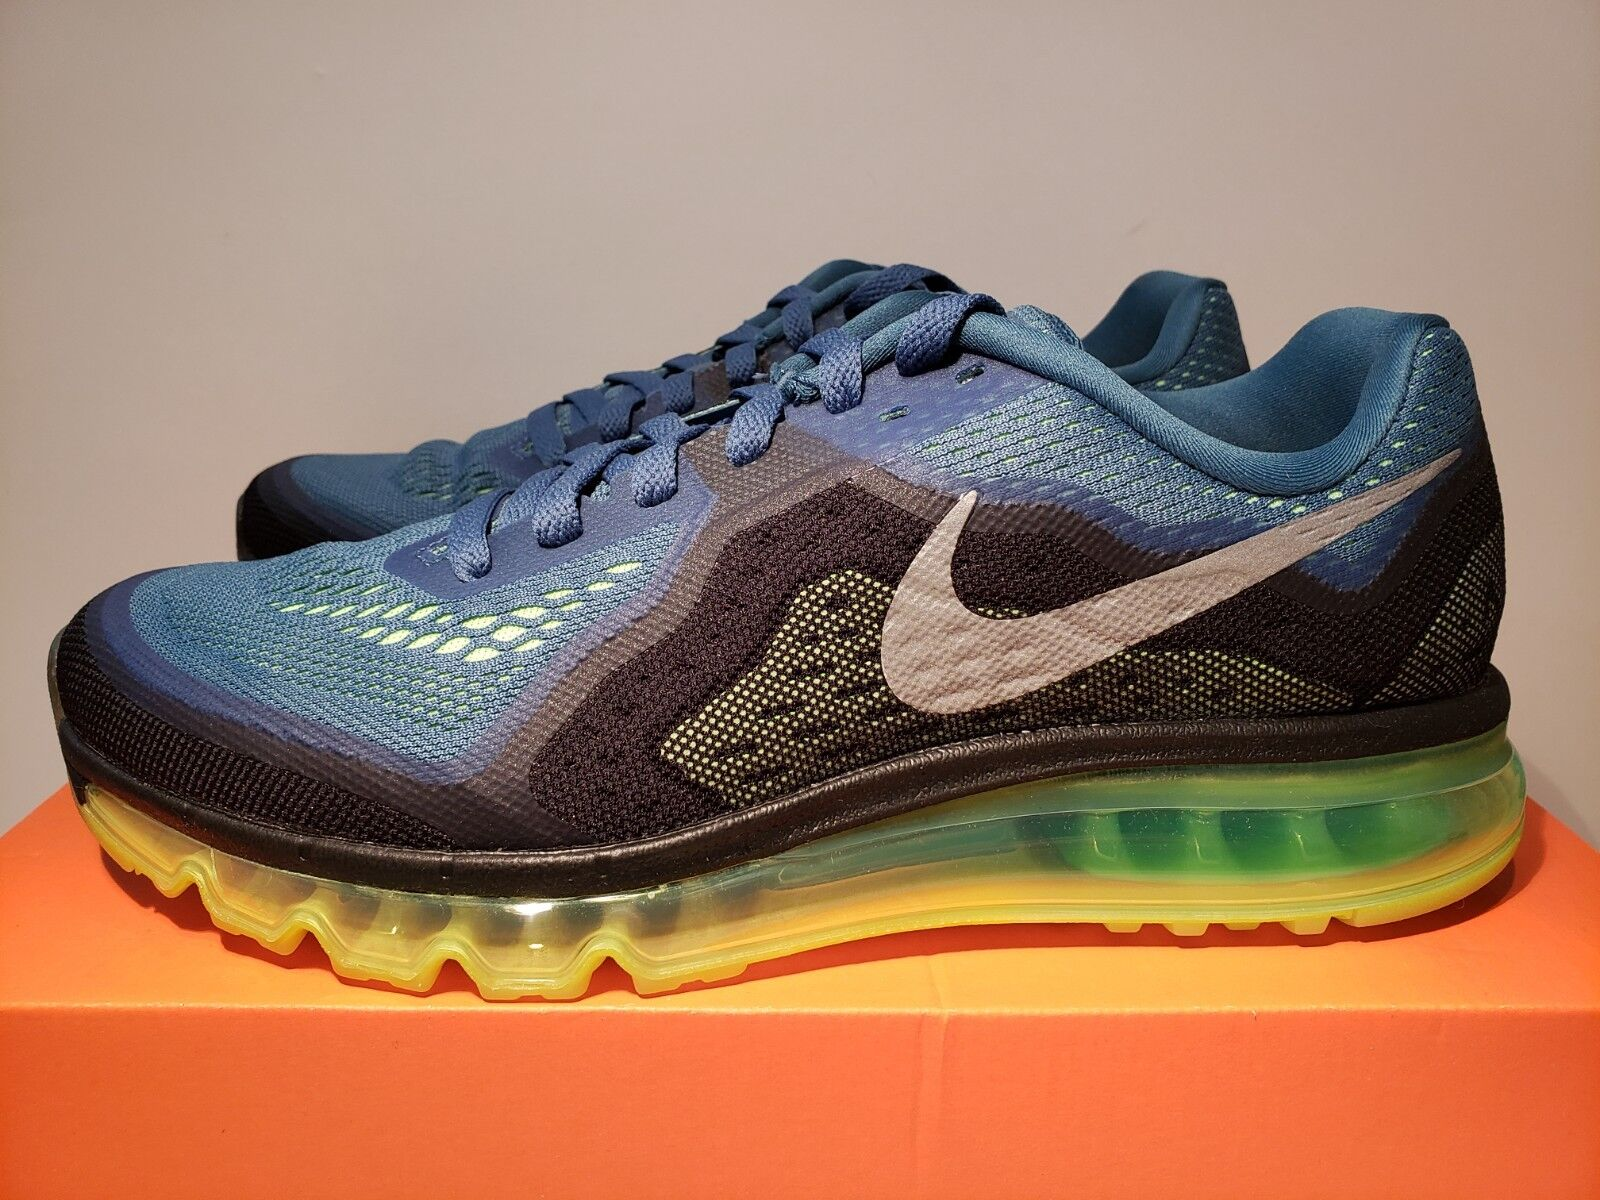 Men 's nike max' air max' nike silver/flash lime/schwarz 2014 rift Blau/reflective us - 10 c95667